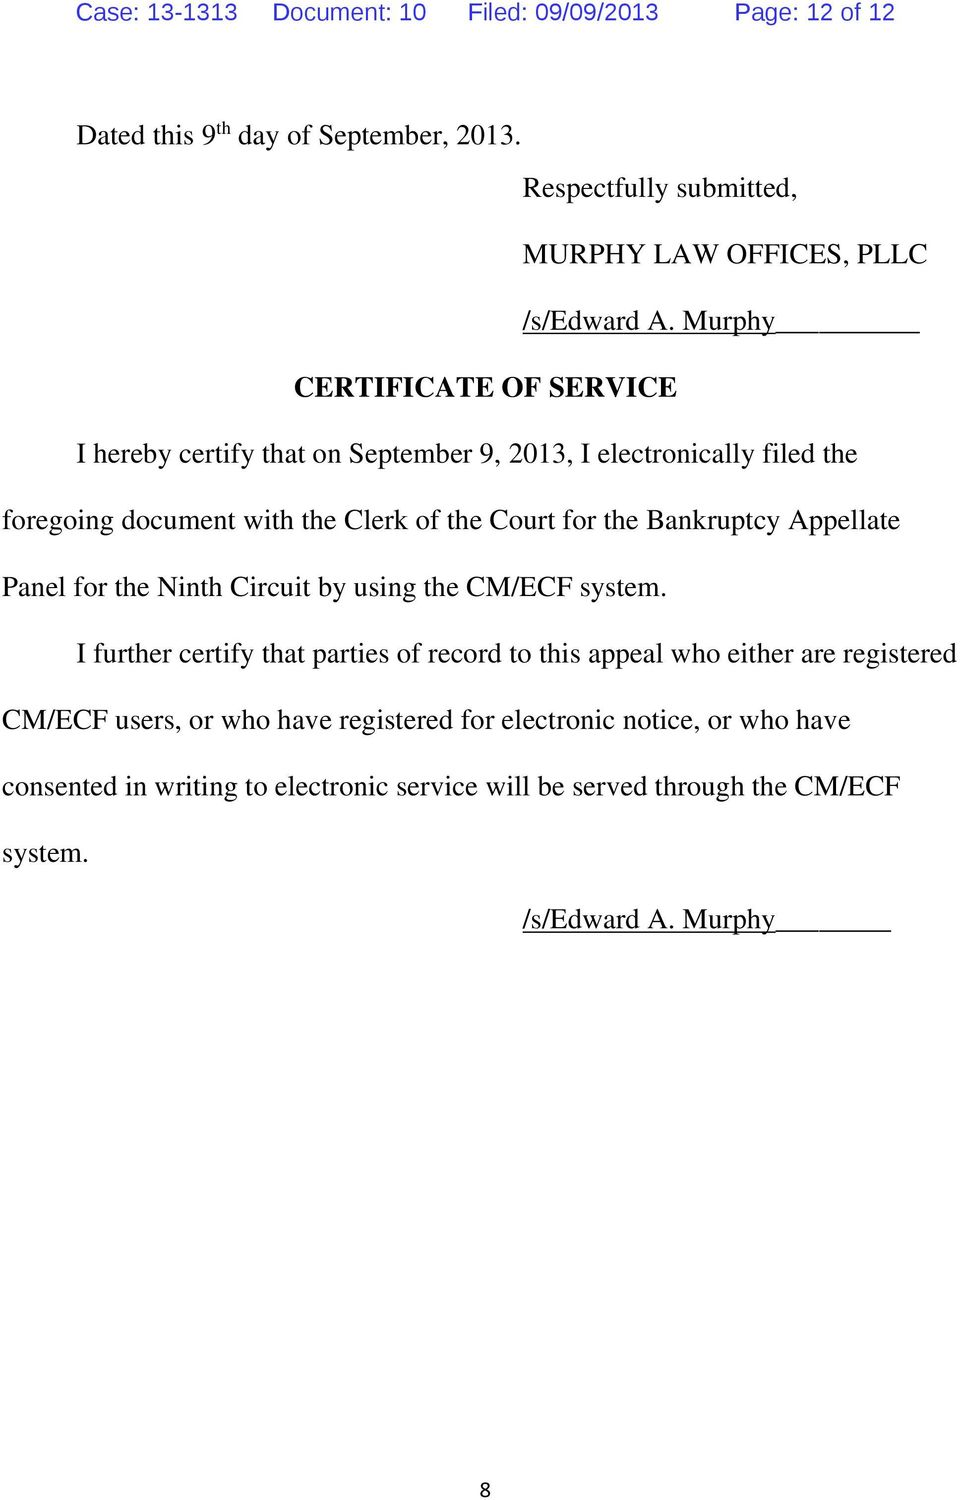 Bankruptcy Appellate Panel for the Ninth Circuit by using the CM/ECF system.